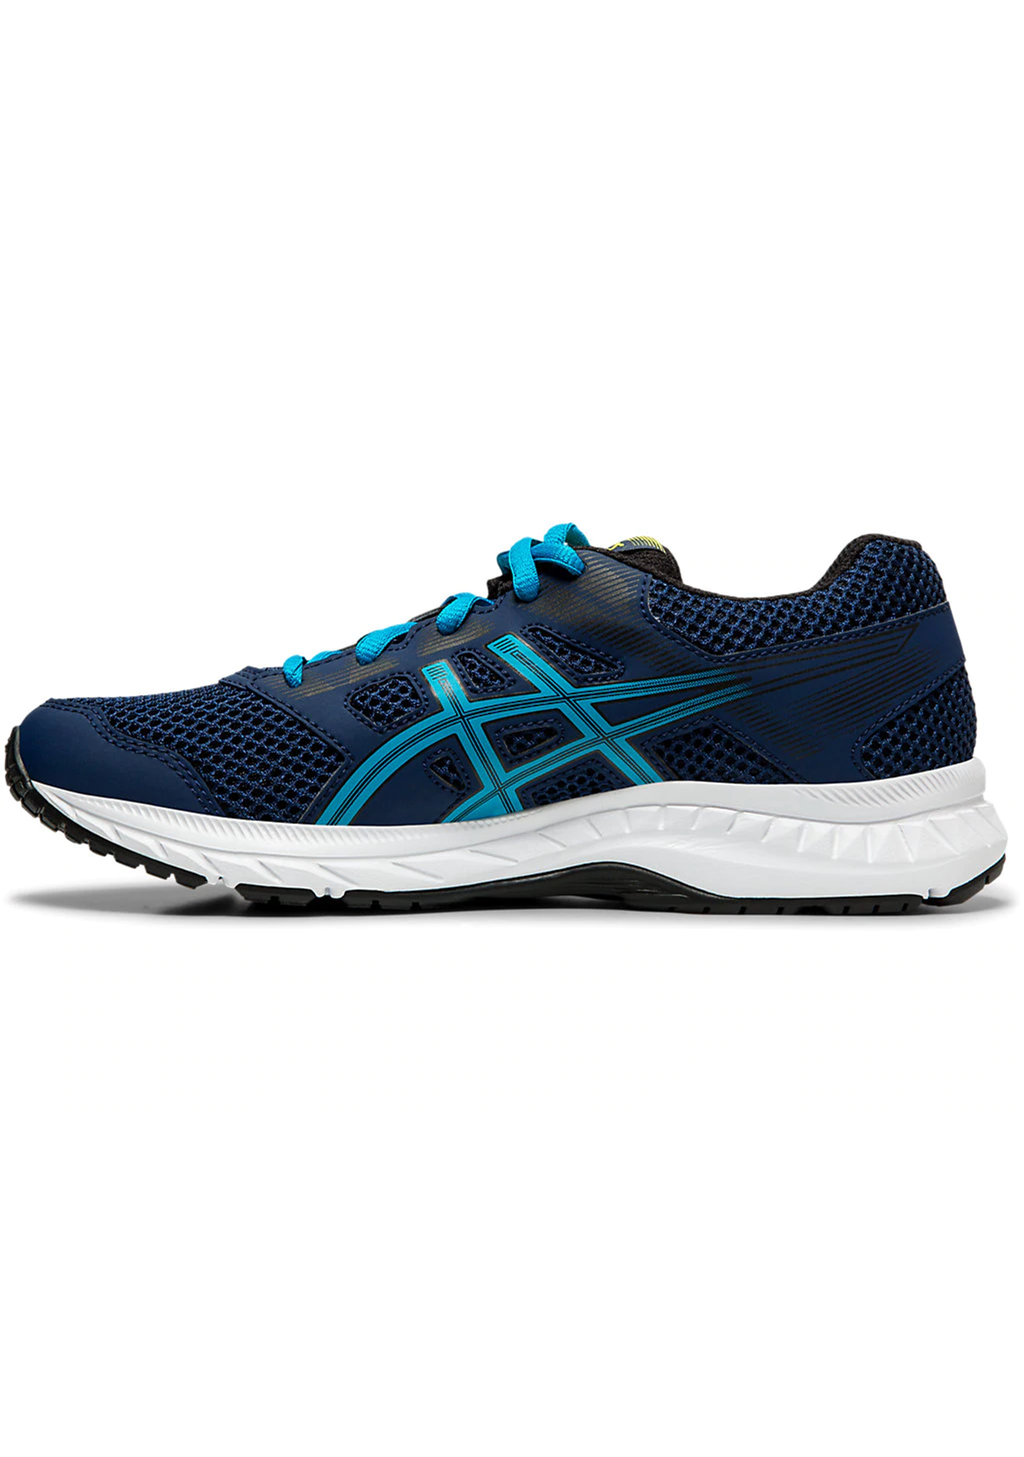 ASICS JUNIOR GEL CONTEND 5 GS WITH FREE AQUA SLIDES <BR> 1014A049 404